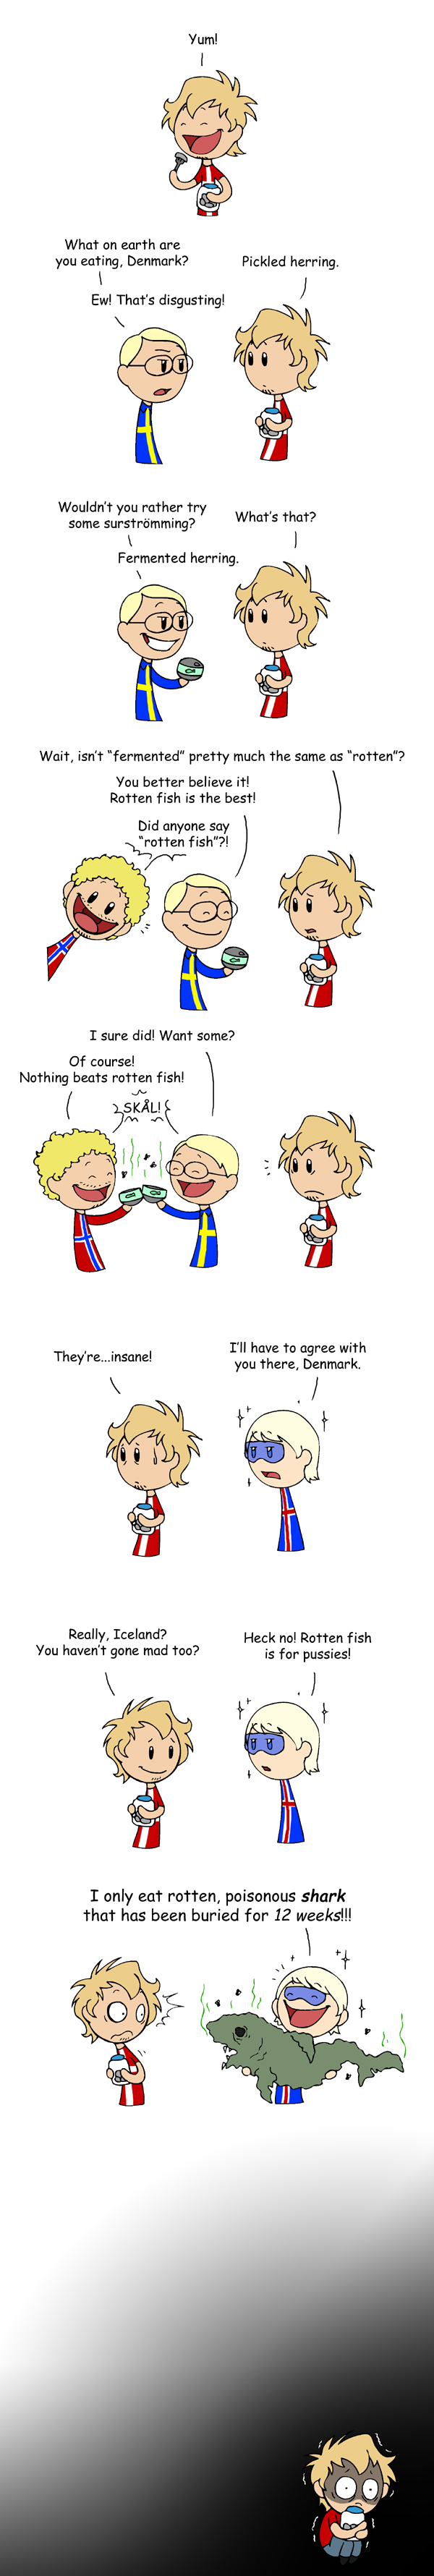 Nordics like Fish